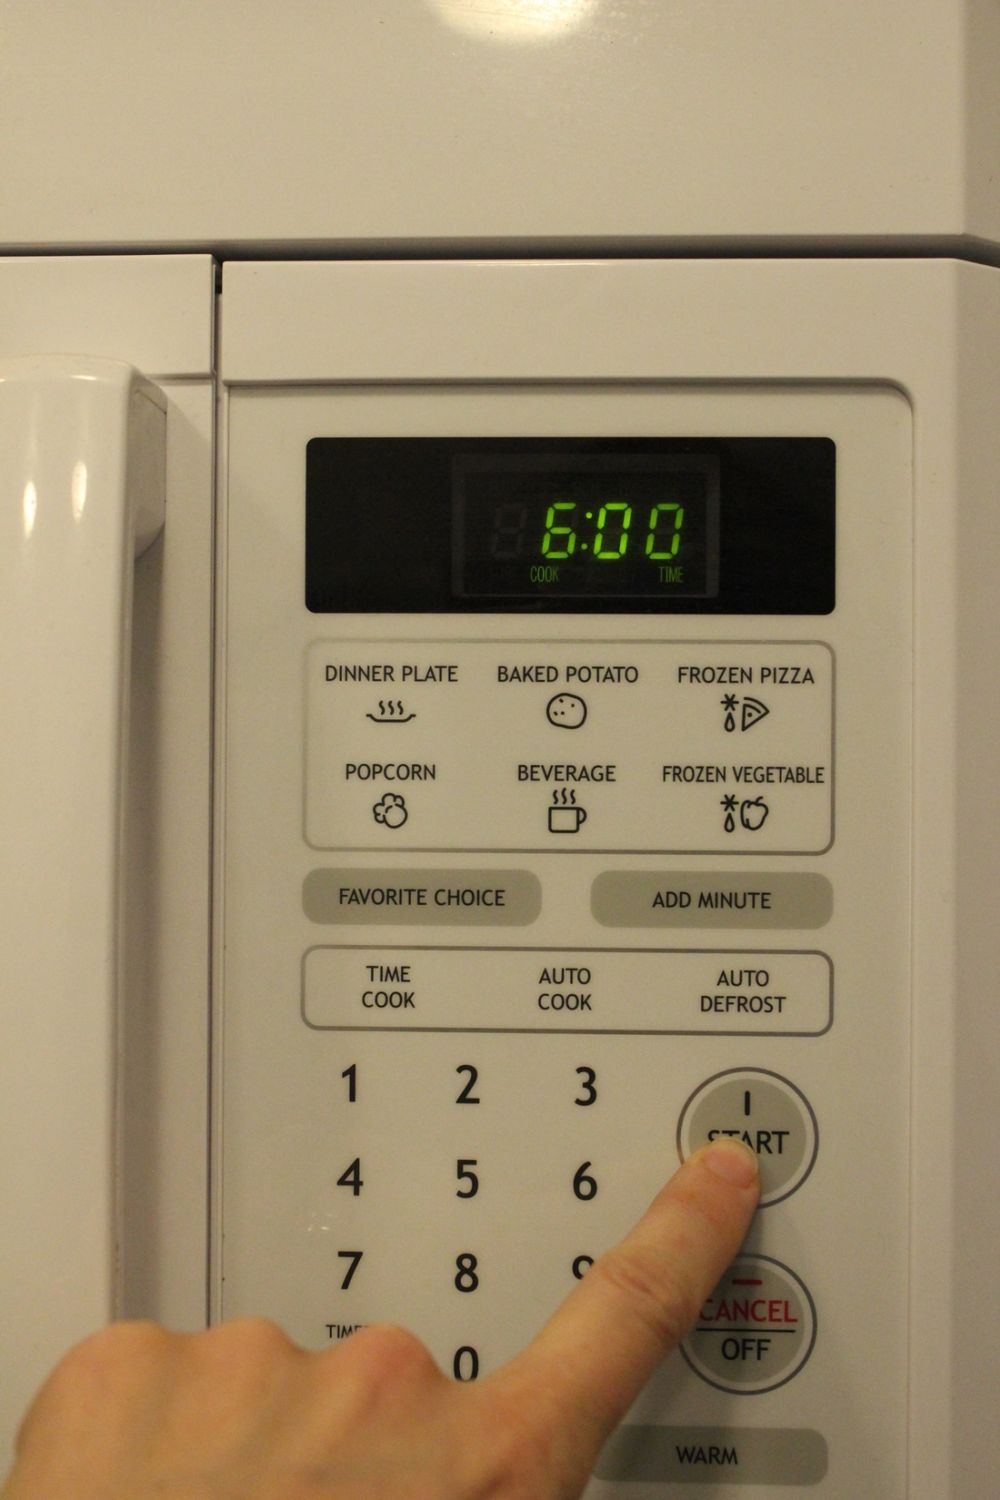 Microwave on high for 3-6 minutes